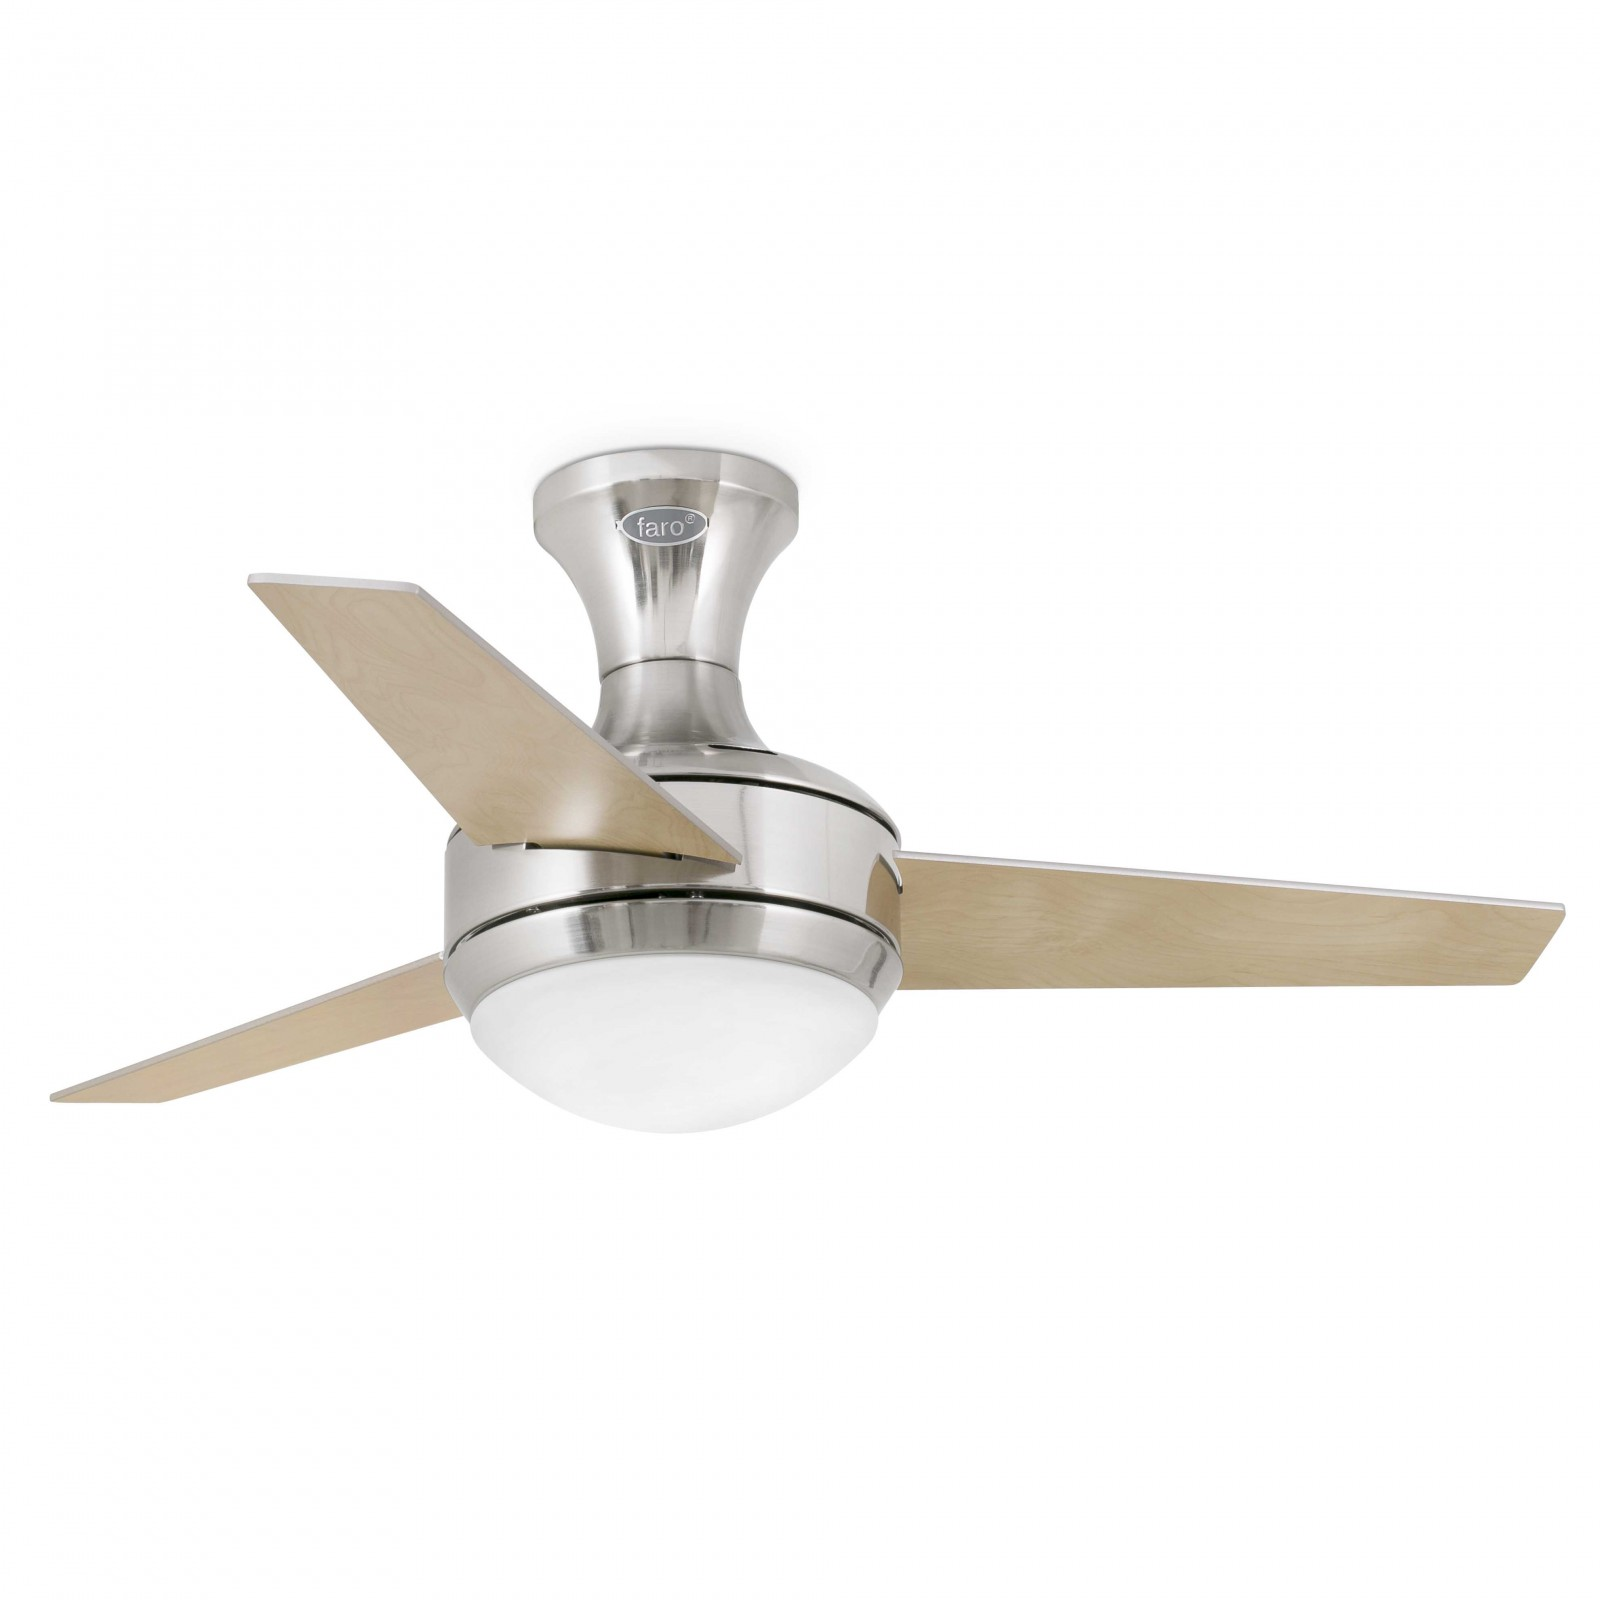 Mini Ceiling Fans Ceiling Fan Mini Ufo Nickel With Light And Remote Ceiling